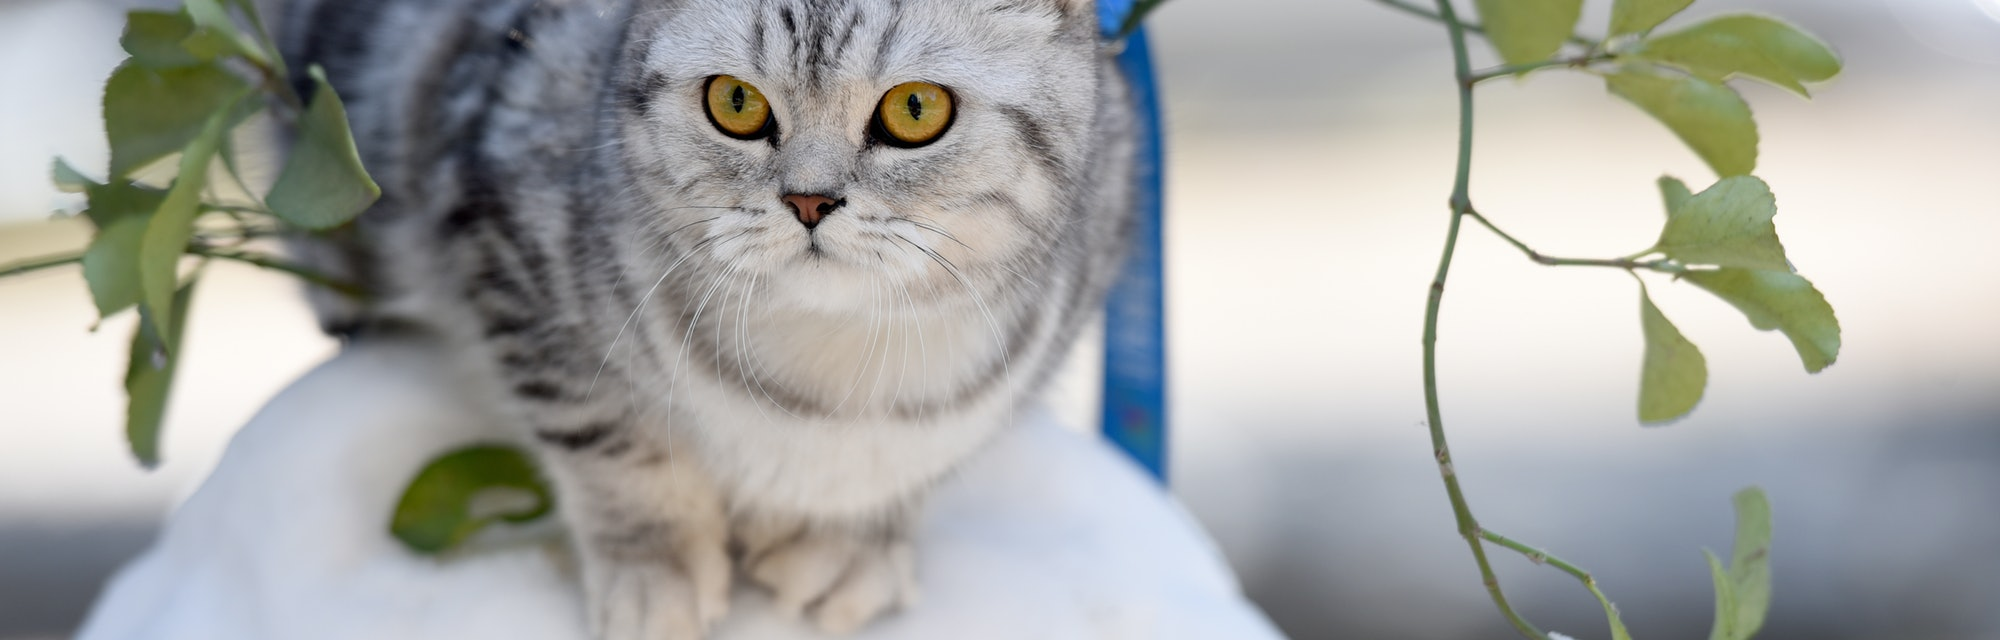 cat sitting outside on snow